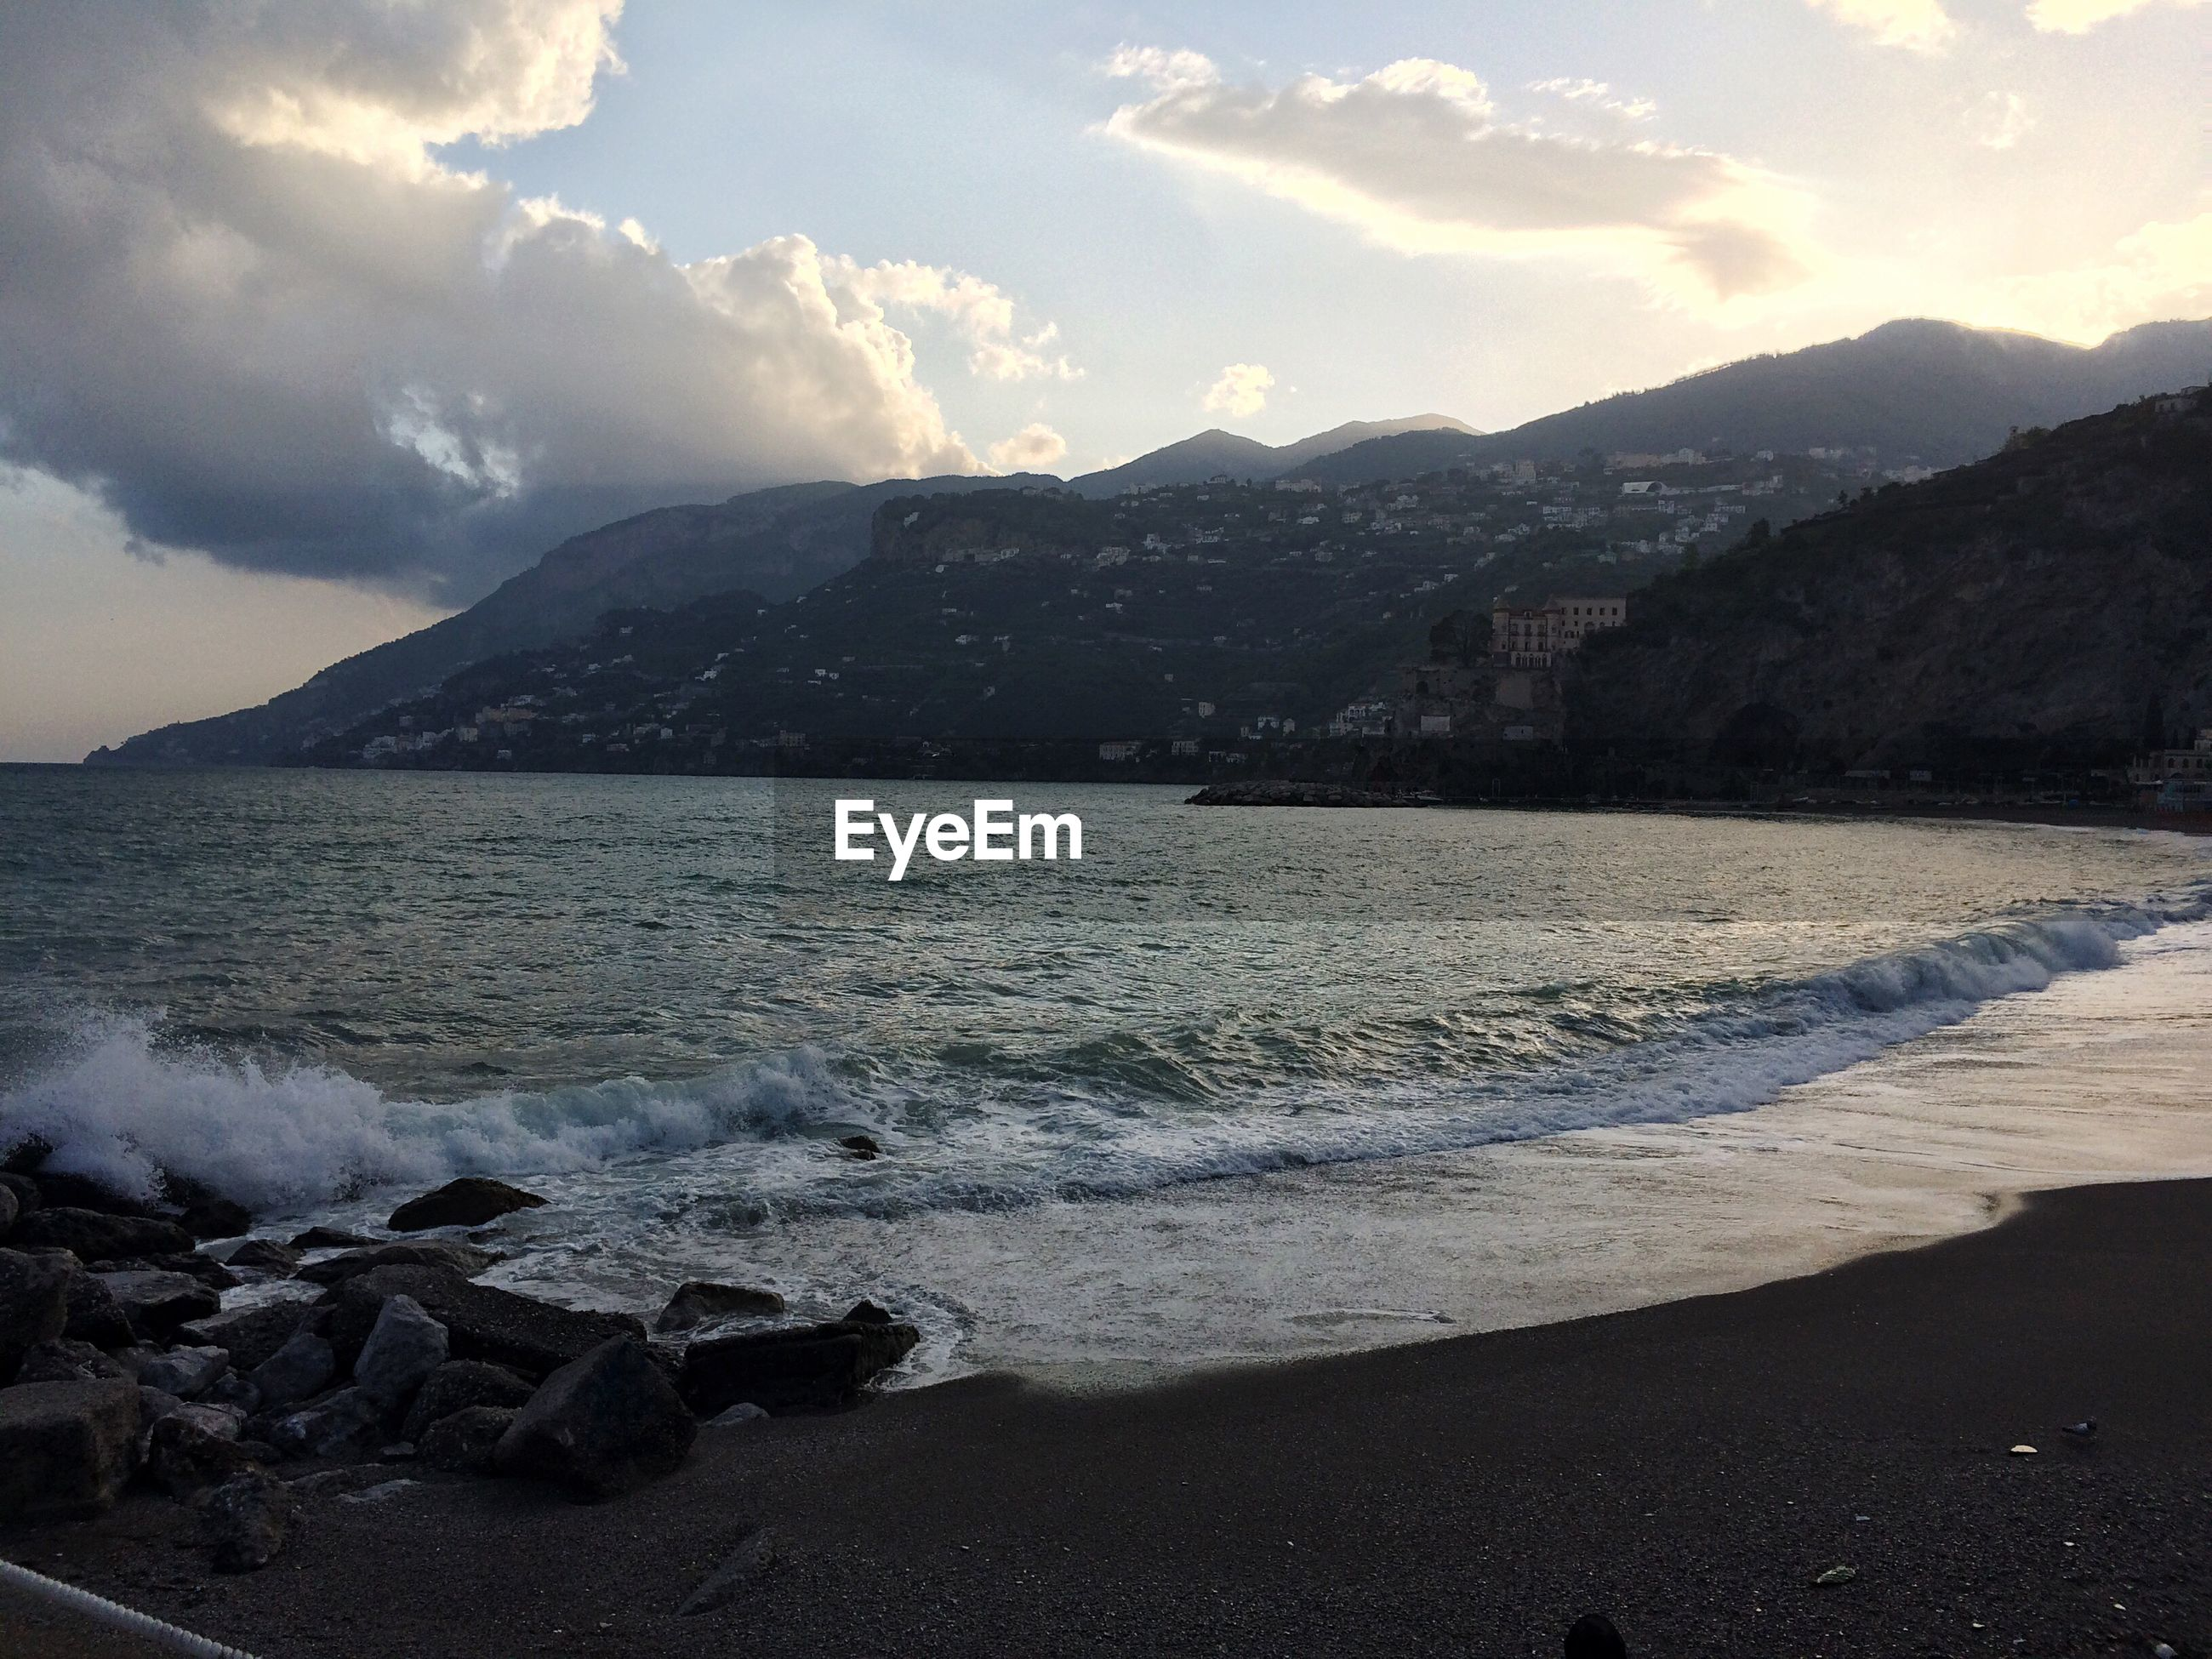 SCENIC VIEW OF SEA AND MOUNTAINS